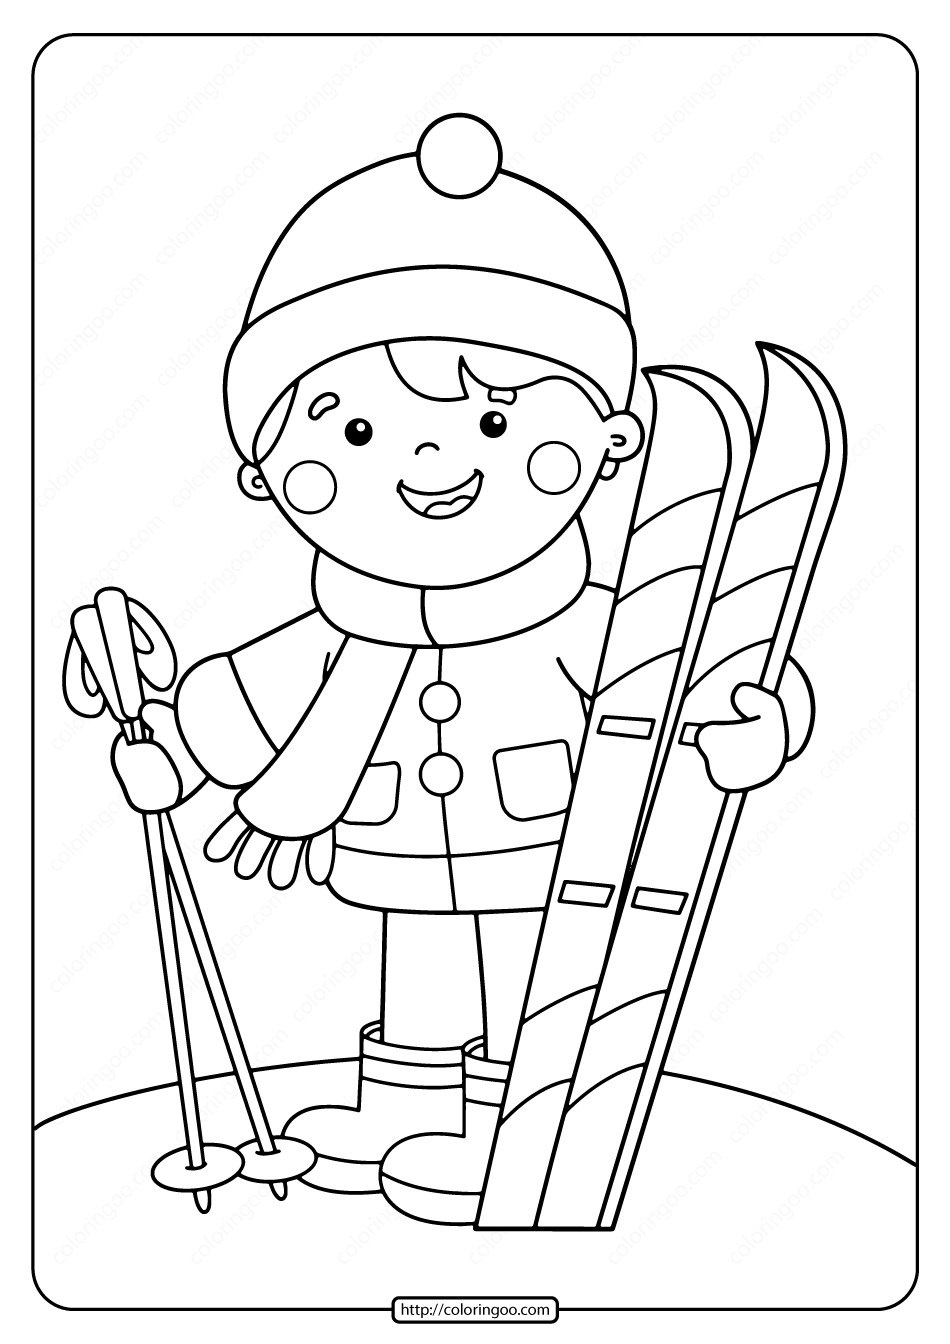 Free Printable Boy With Skis Pdf Coloring Page